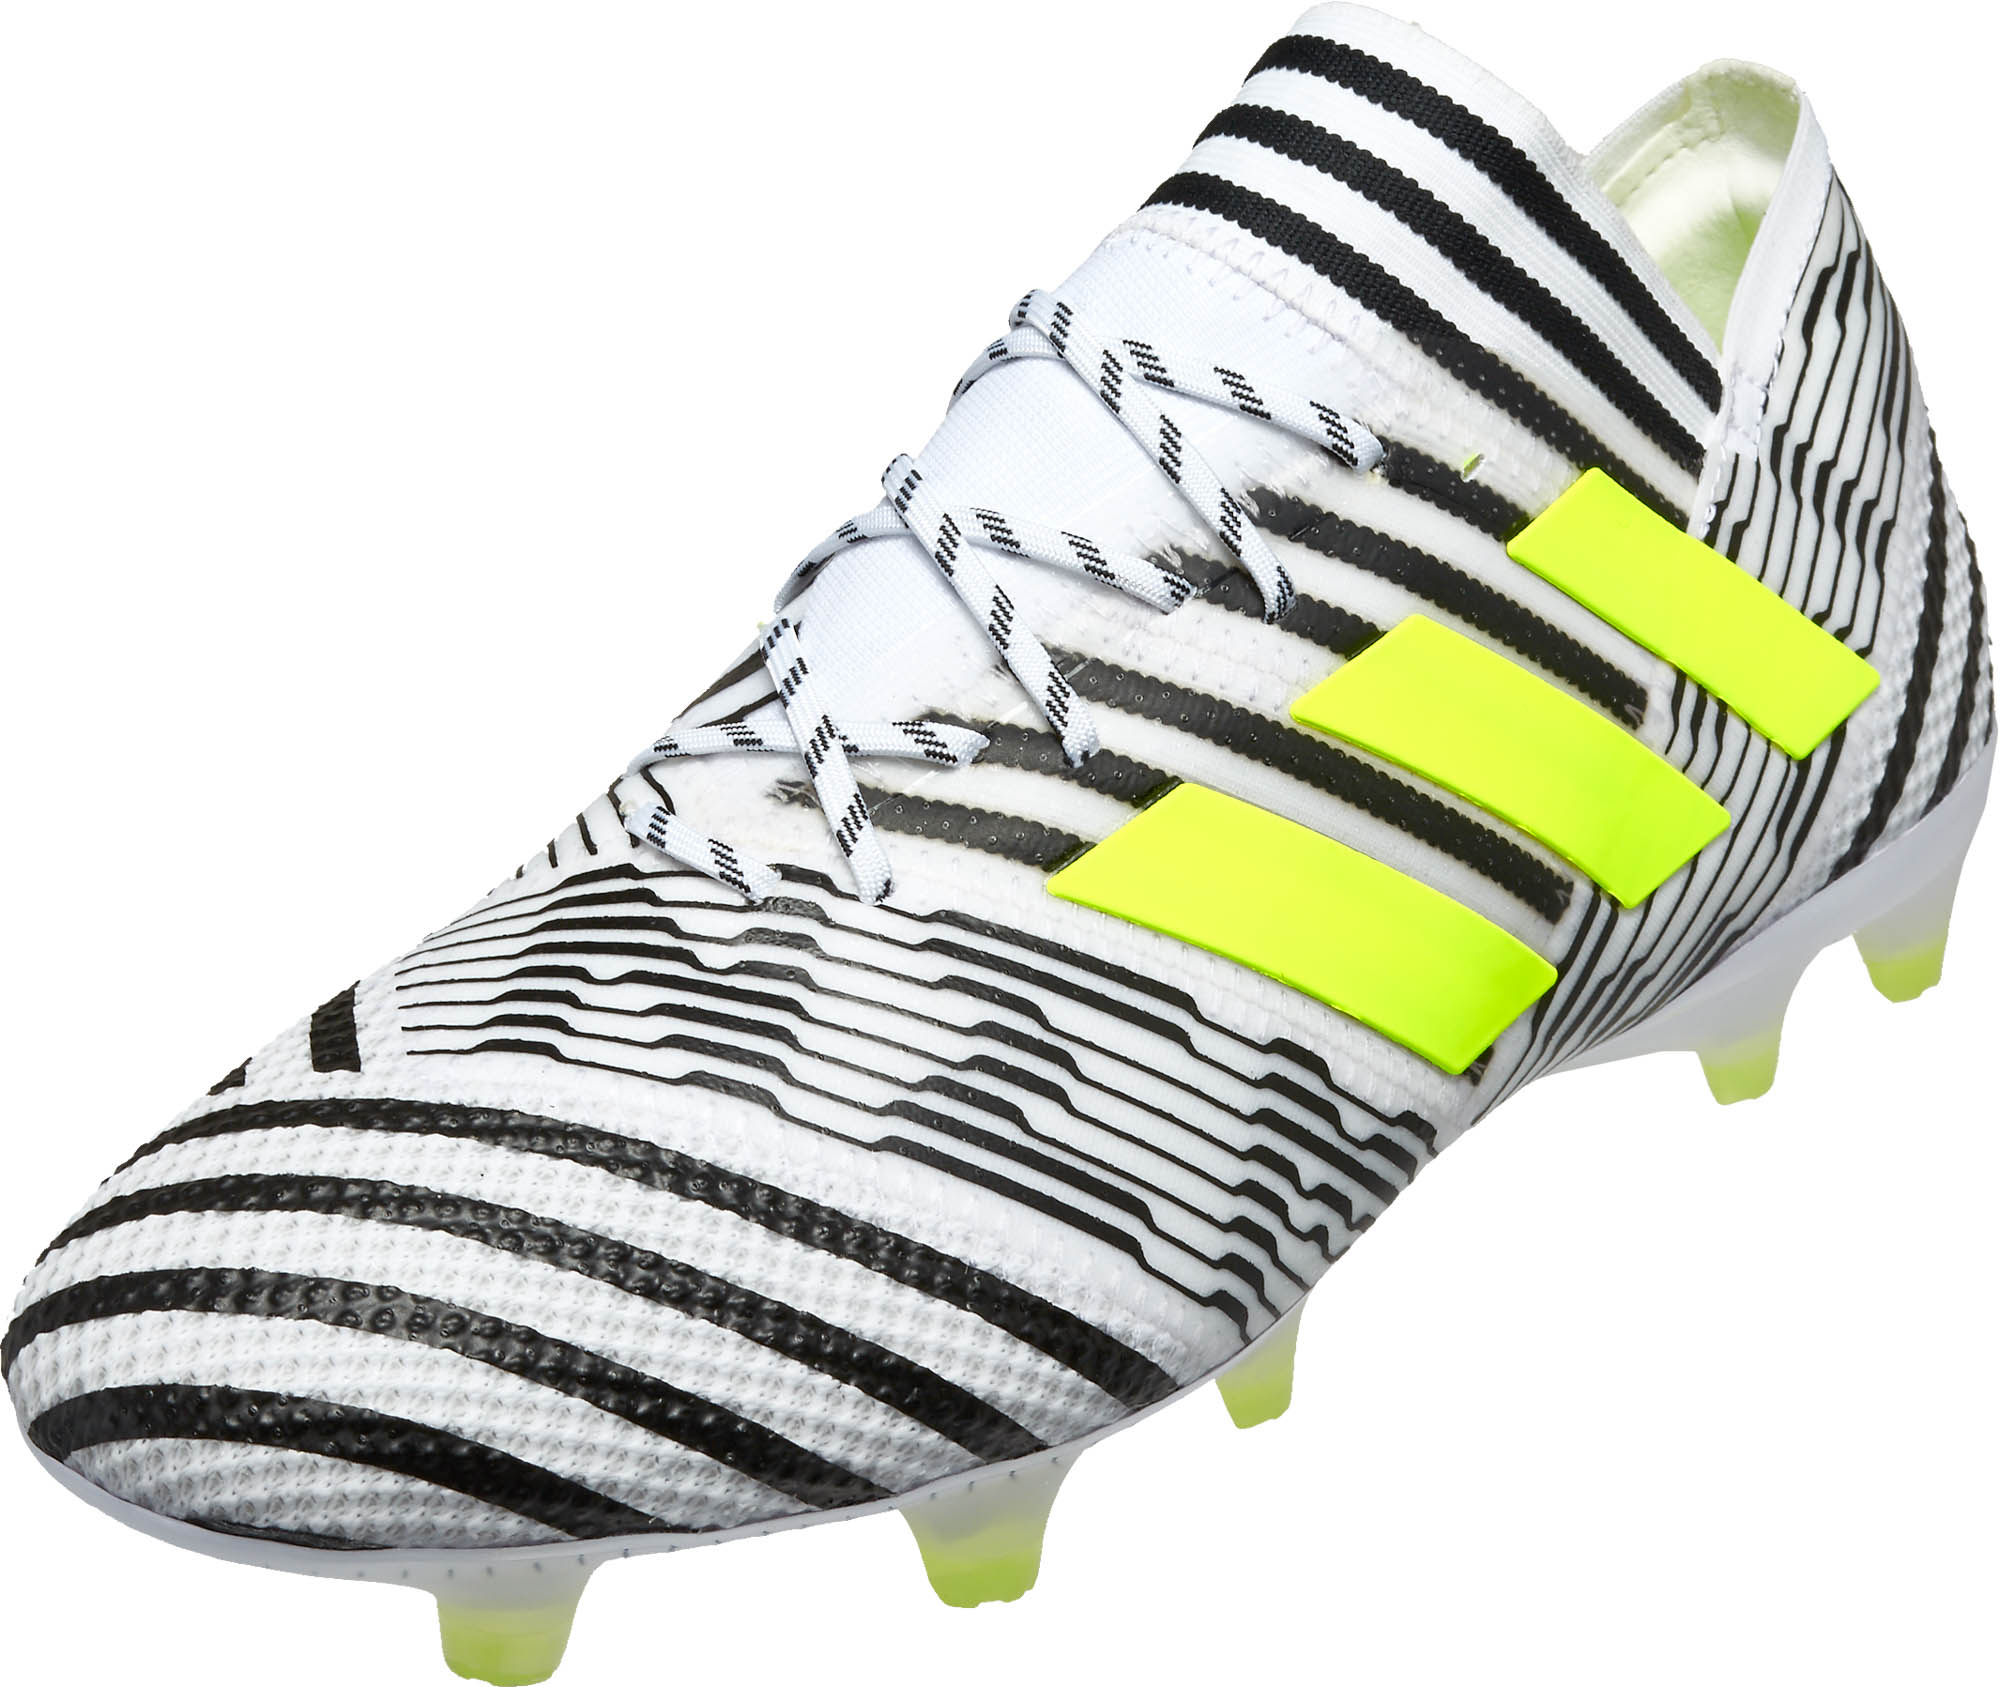 The Biggest Sale On Soccer Cleats Is